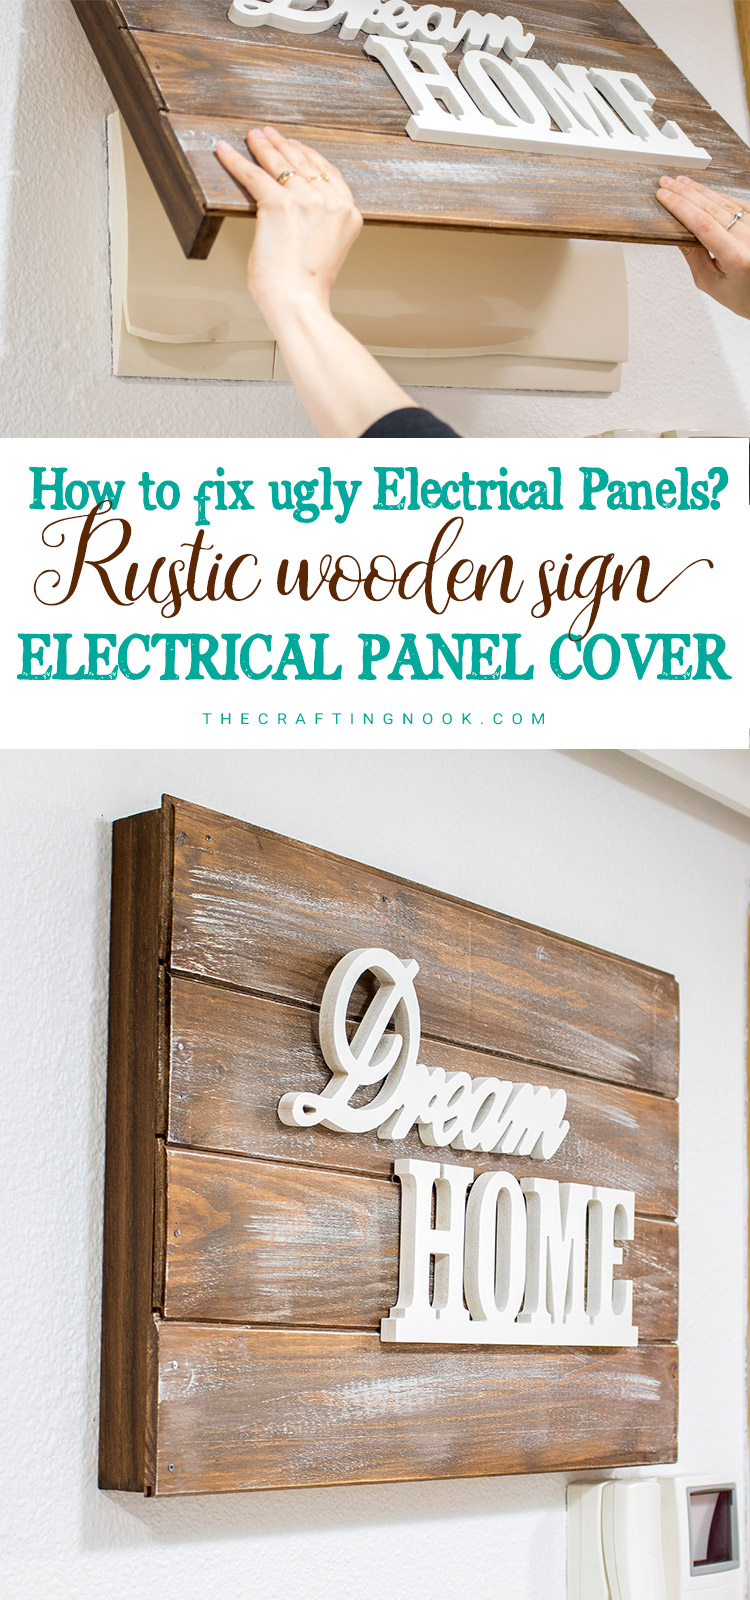 medium resolution of rustic wooden sign electrical panel cover